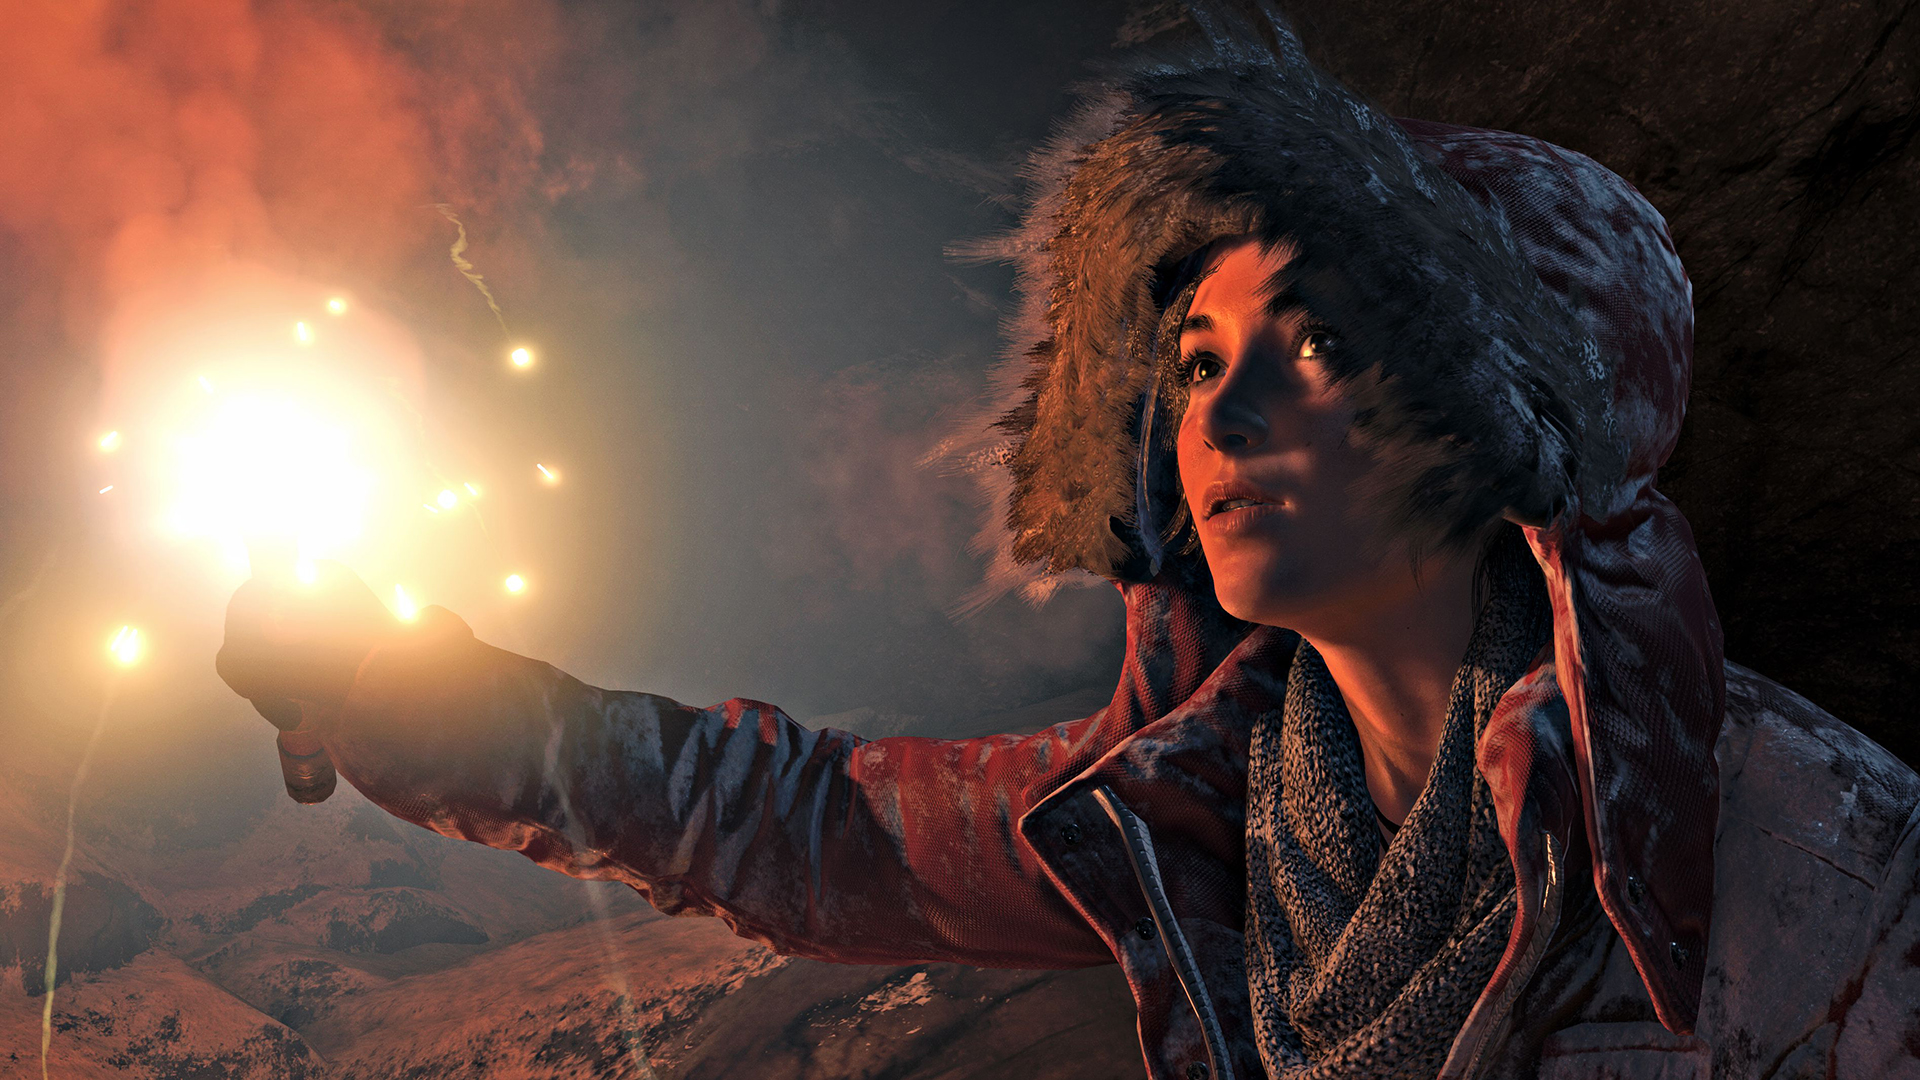 Find Out More About Lara Croft In This New Video Series